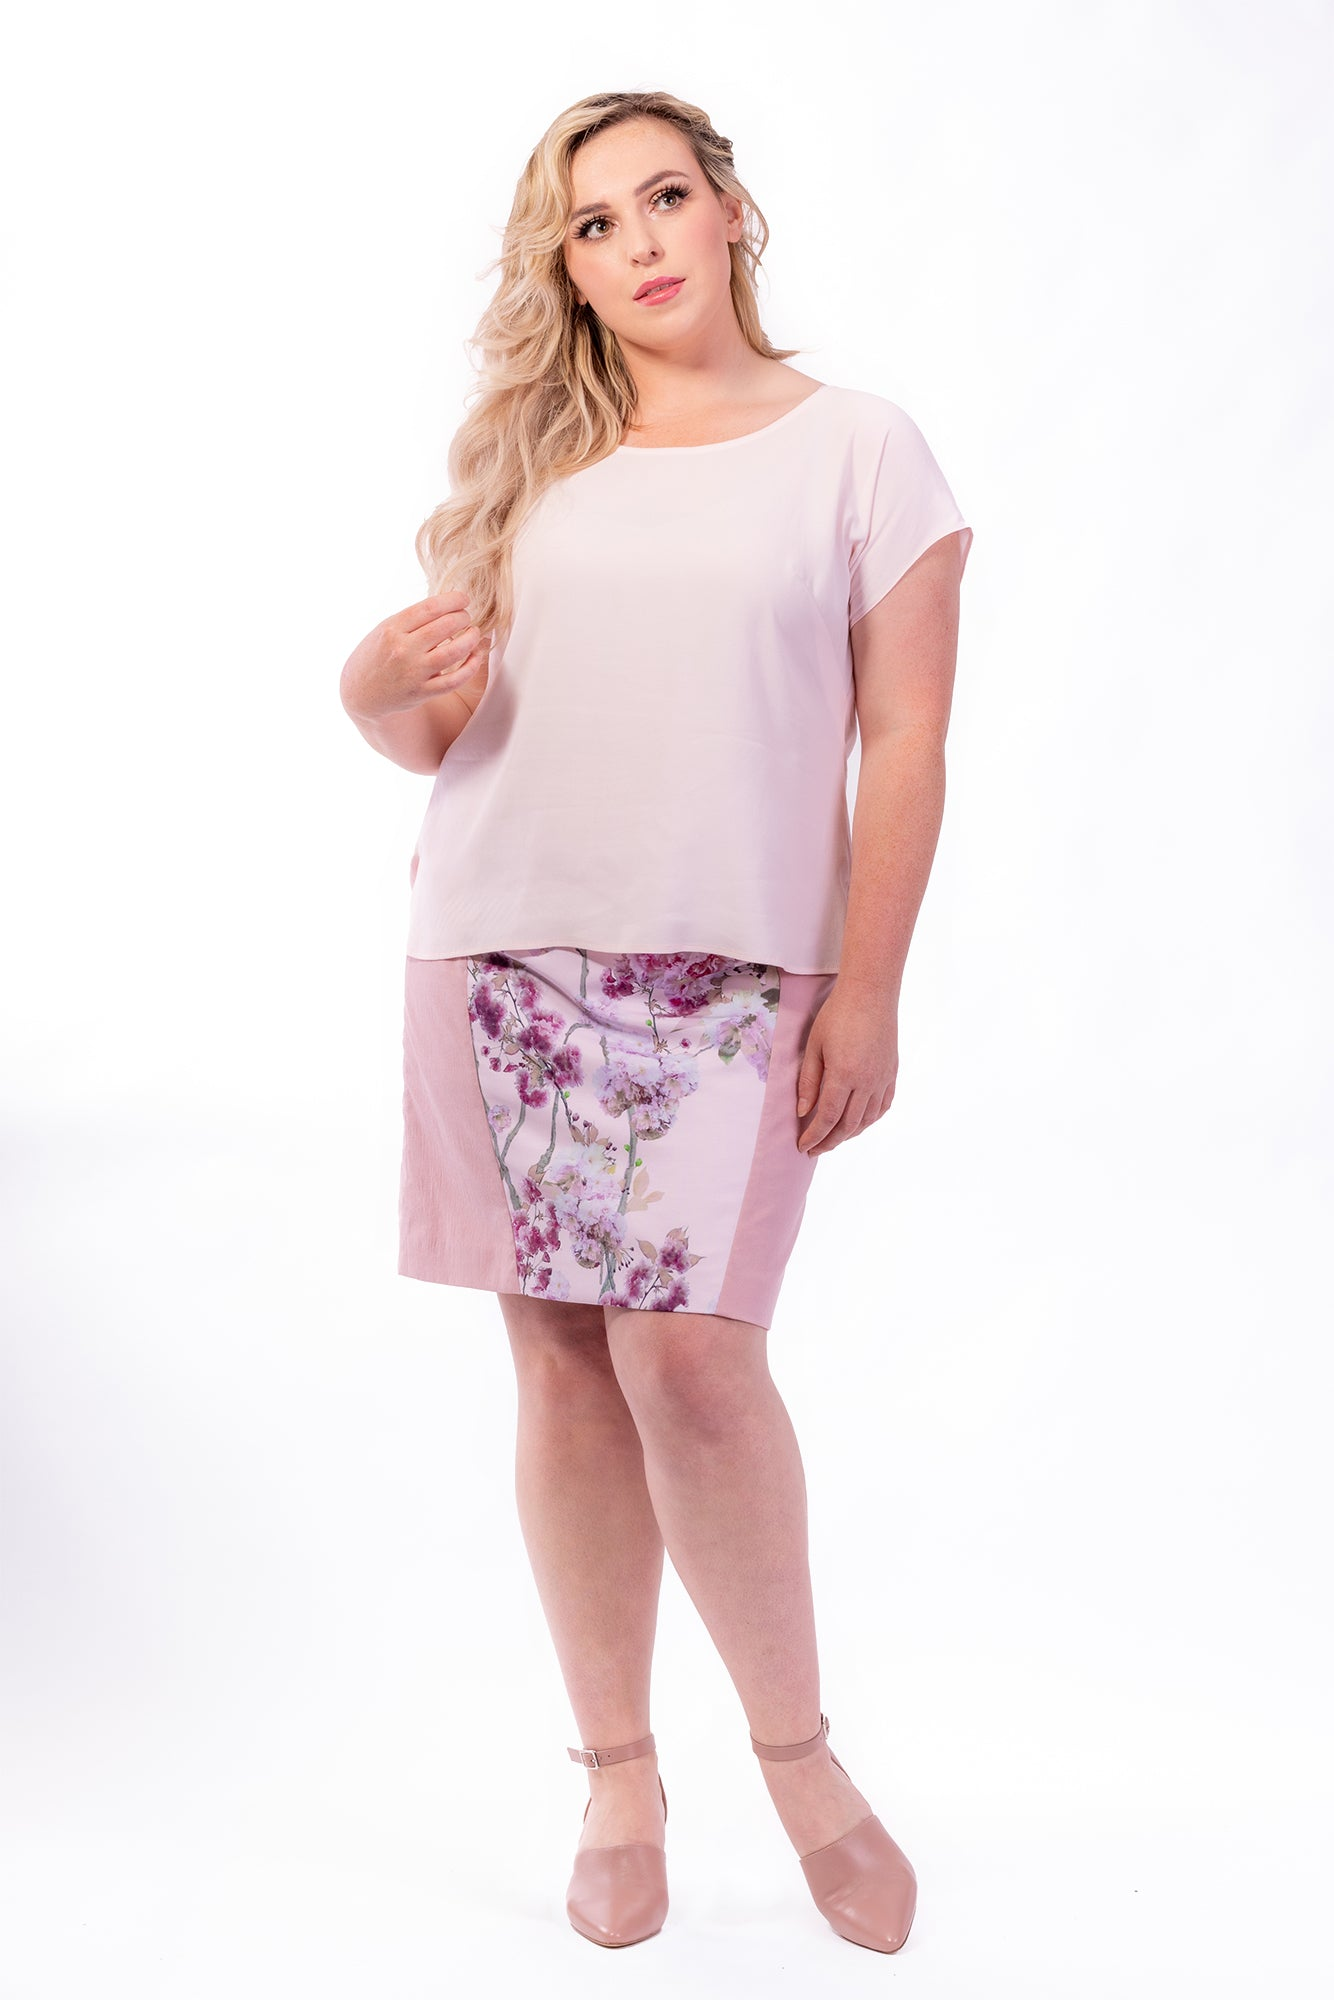 Forget-Me-Not Lola short sleeve blouse pattern in rose, full length photo